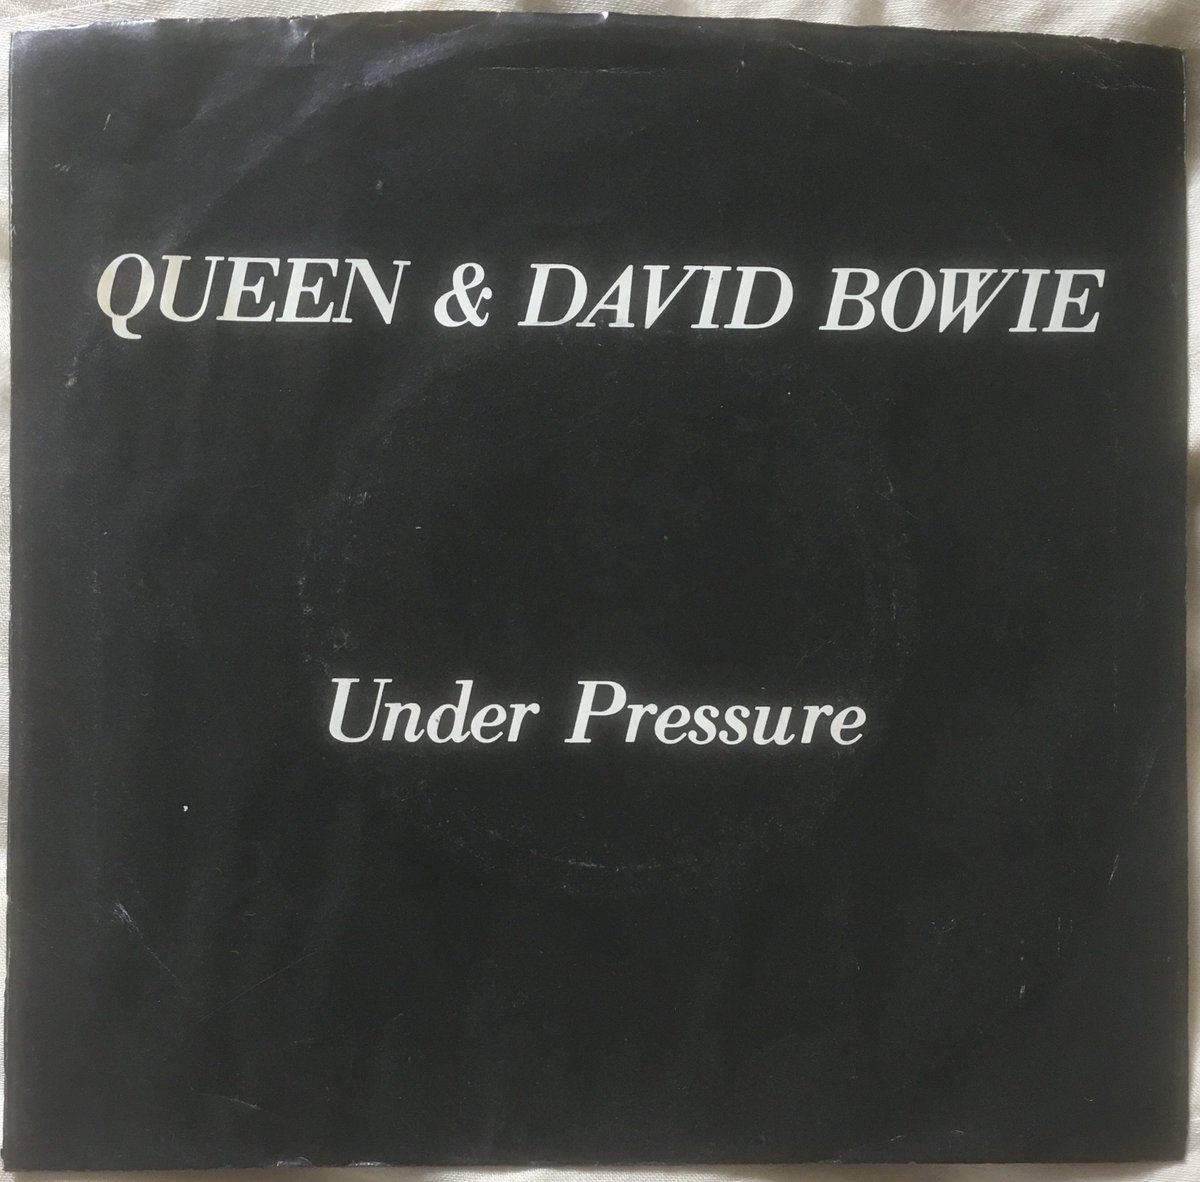 """227/ """"Under Pressure"""": USA 7"""" single on standard Elektra label. Not massively rare but I do like the slight sleeve variation to the UK release as it has an advert for the Greatest Hits album on the back. #Queen #FreddieMercury #BrianMay #JohnDeacon #RogerTaylor #DavidBowie<br>http://pic.twitter.com/KnquDTPJiW"""